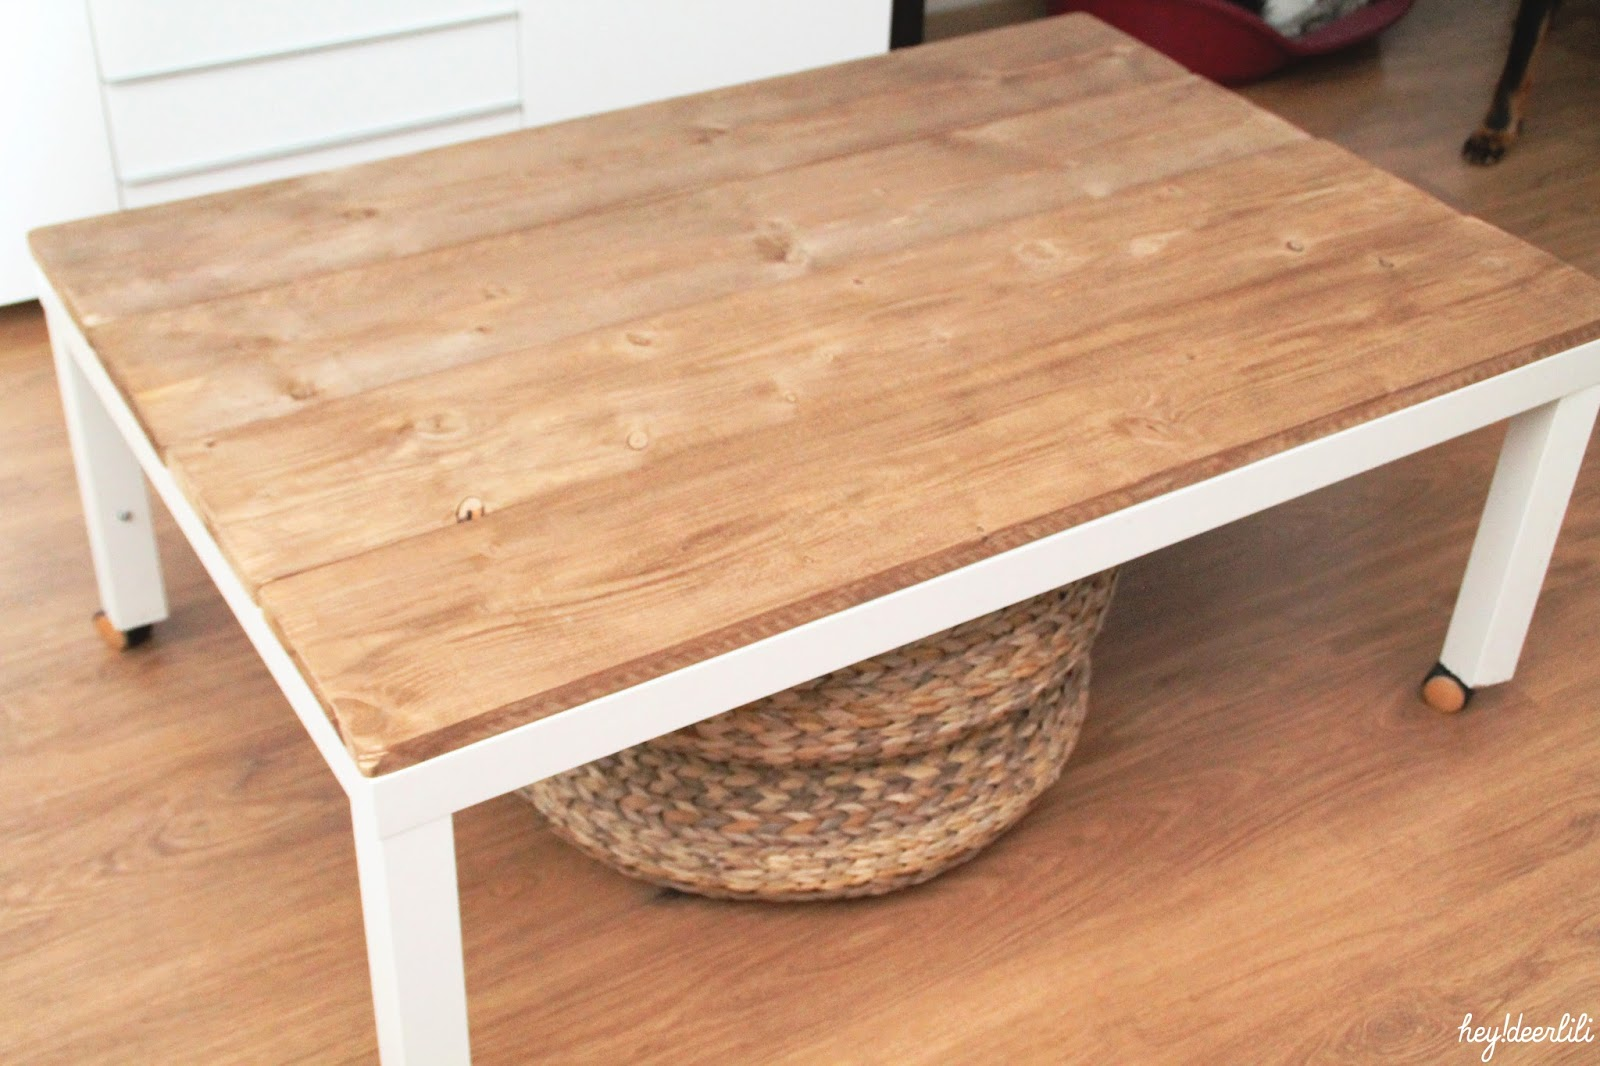 Customiser une table basse ikea - Customiser table basse ...